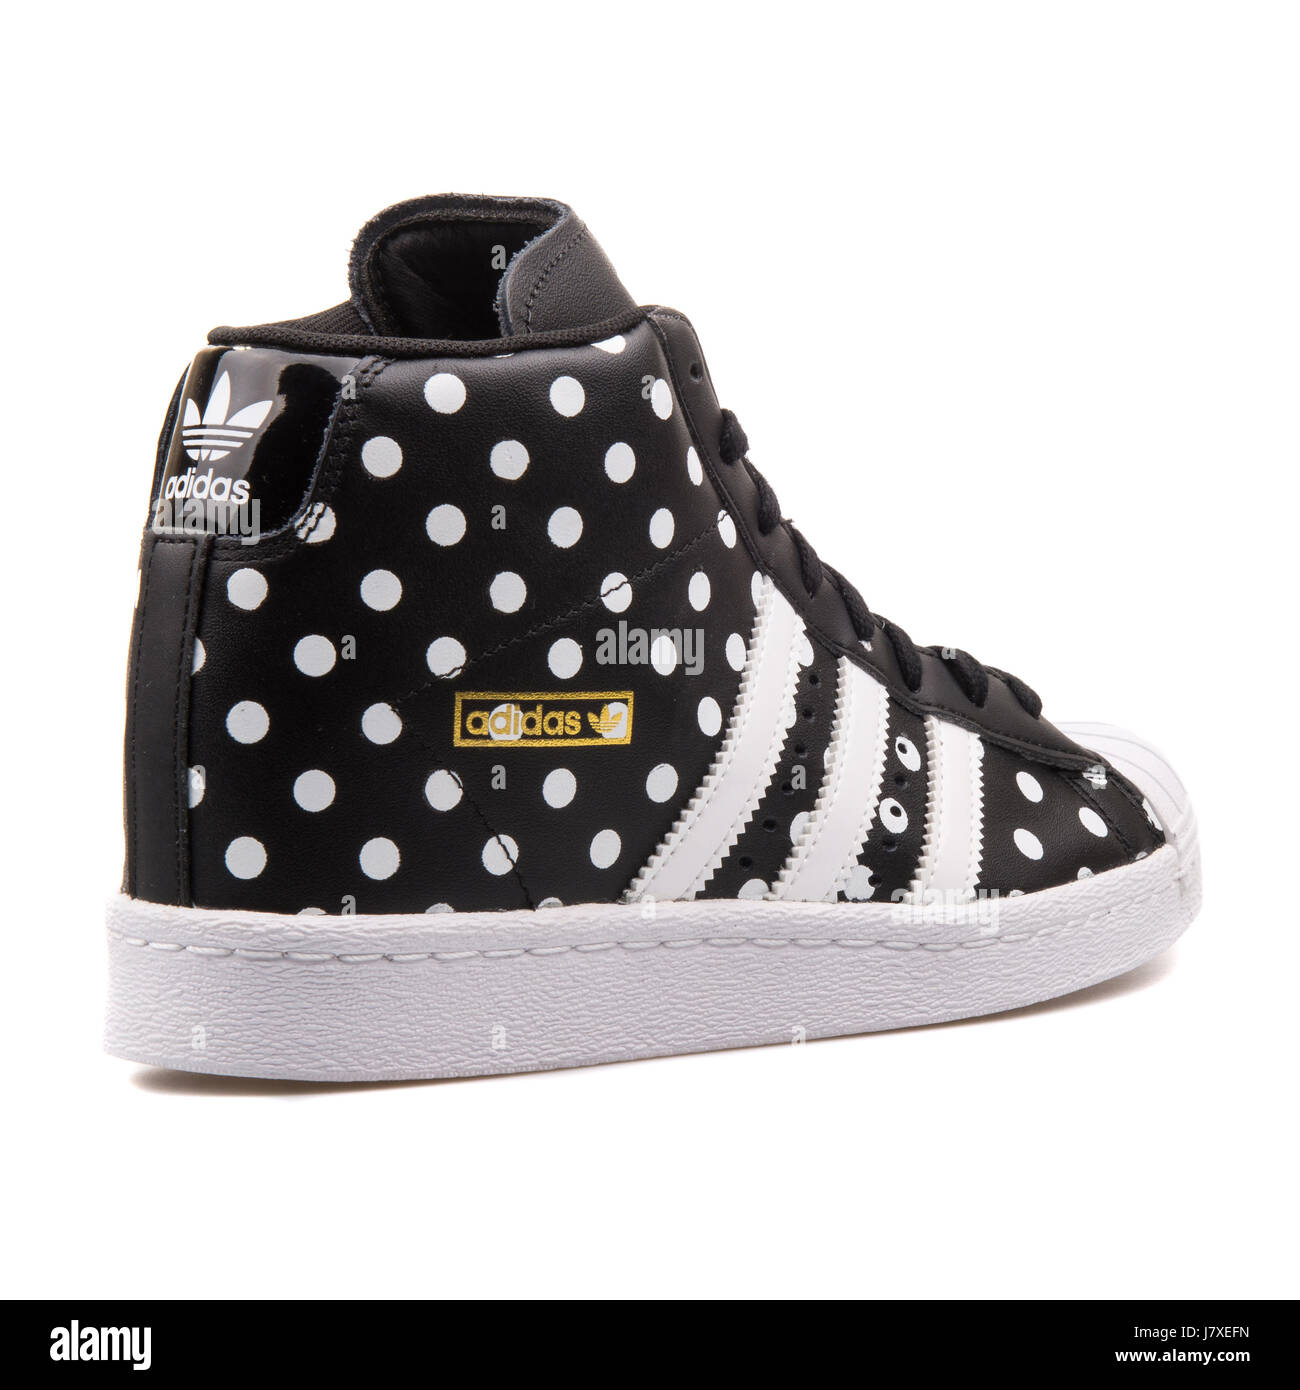 Adidas Superstar UP W Women's Black With White Dots Sneakers